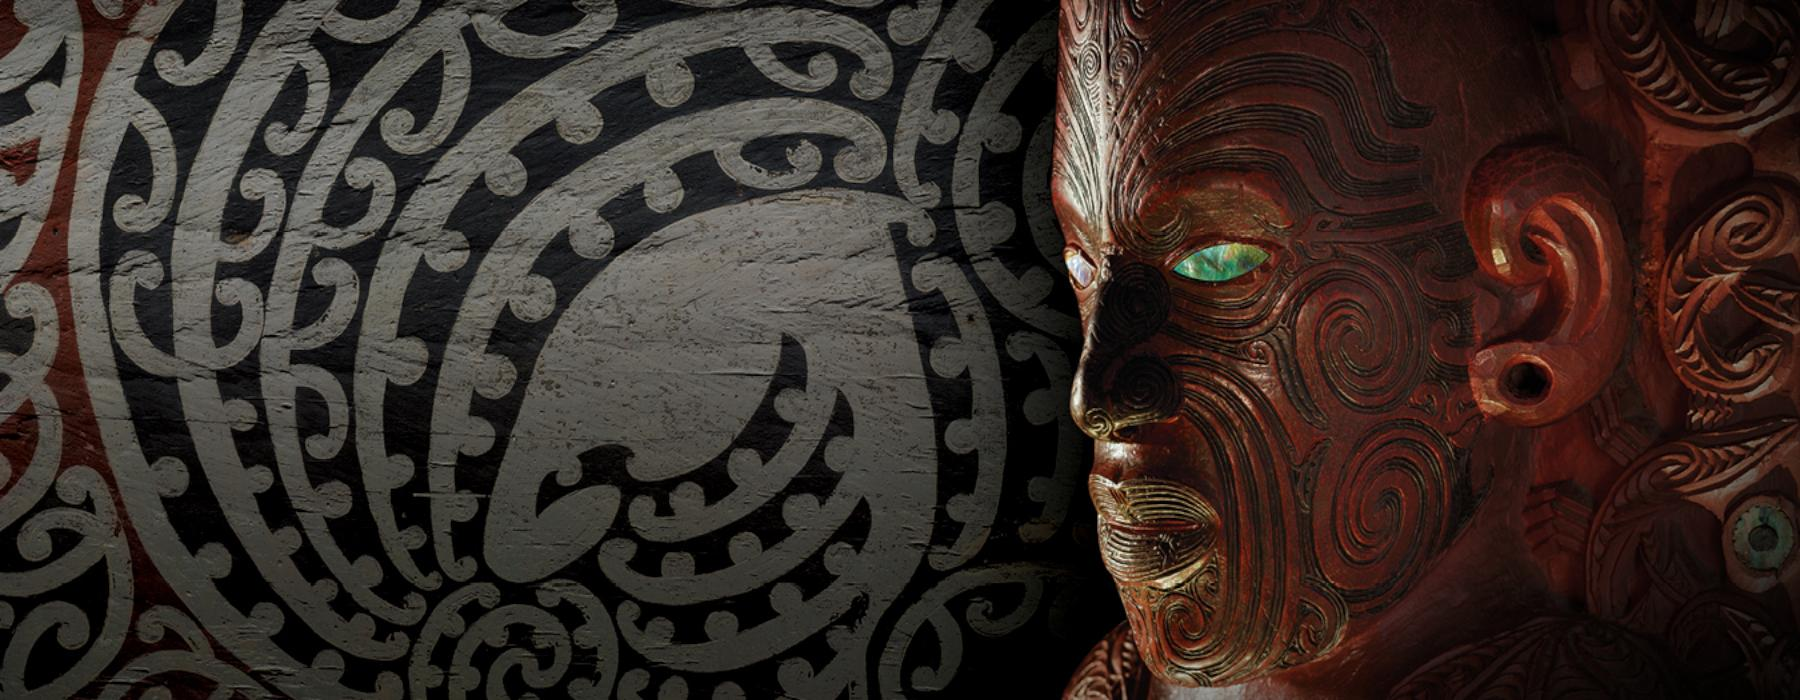 Māori designs and carving